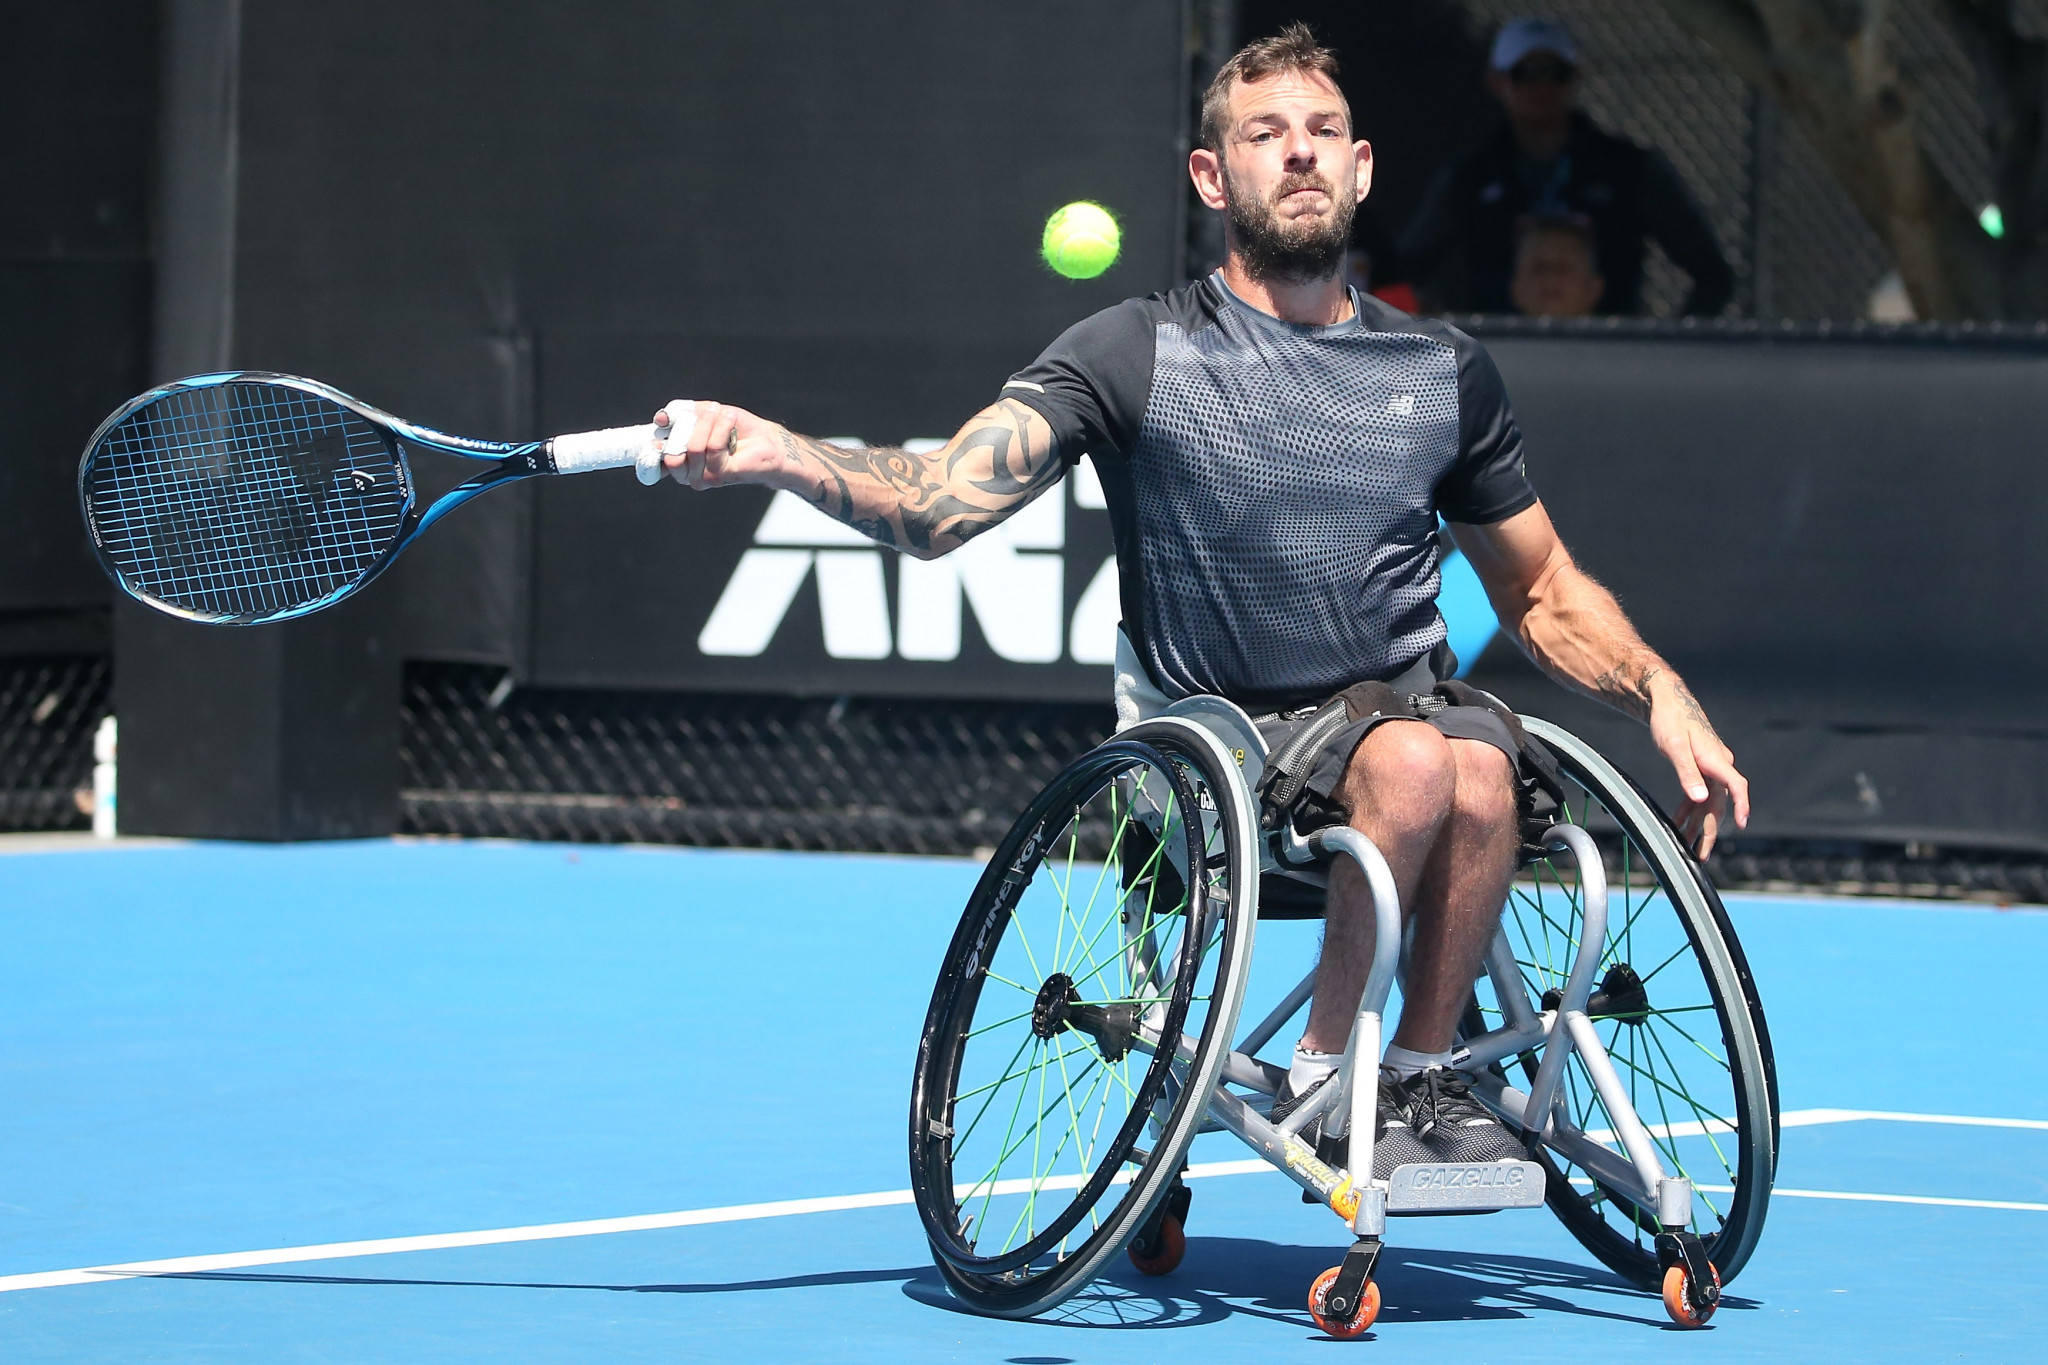 Davidson beats world number one Wagner to reach quad singles final at US Open Championships